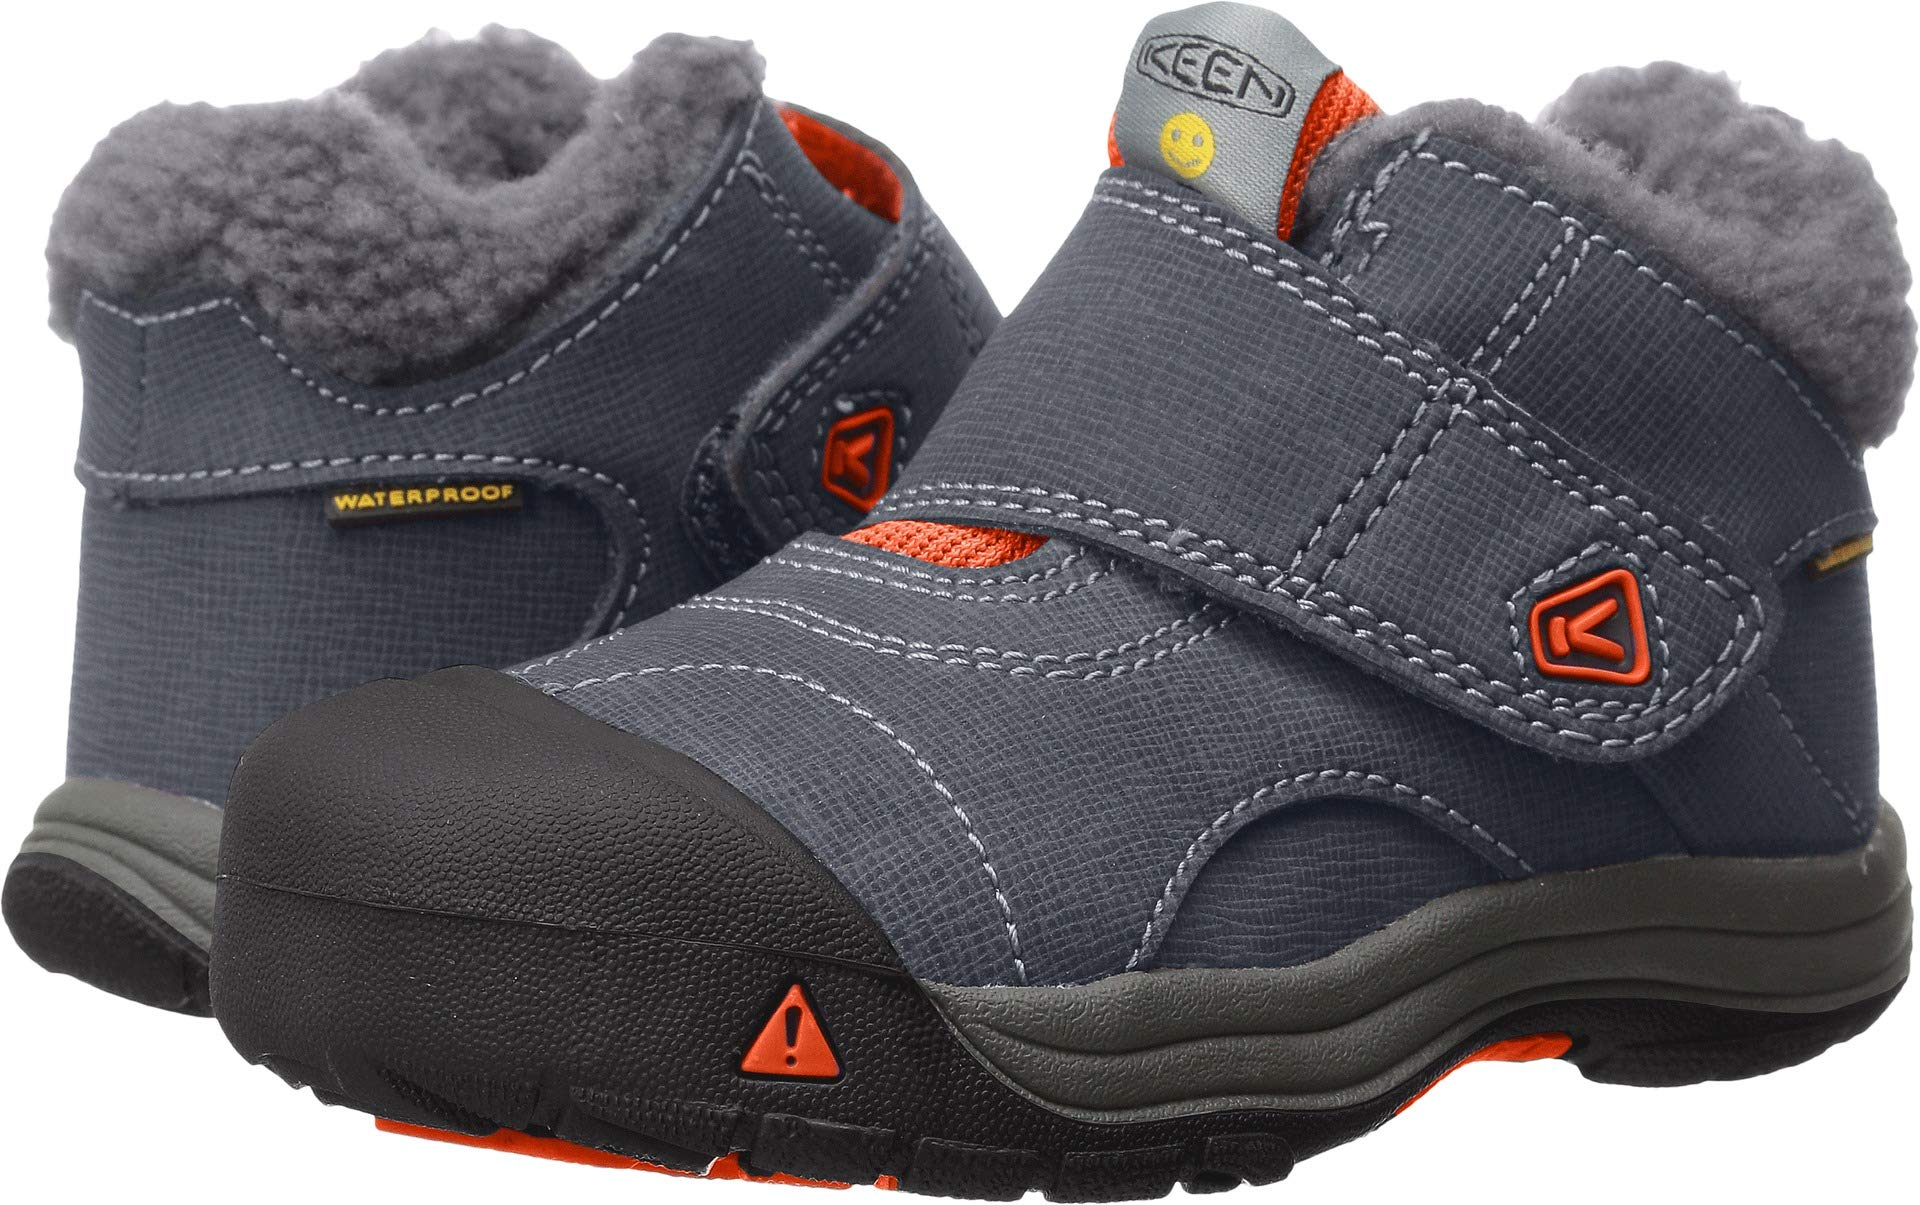 KEEN Kootenay Waterproof Winter Boot (Toddler), Magnet/Koi, 6 M US Toddler by KEEN (Image #1)